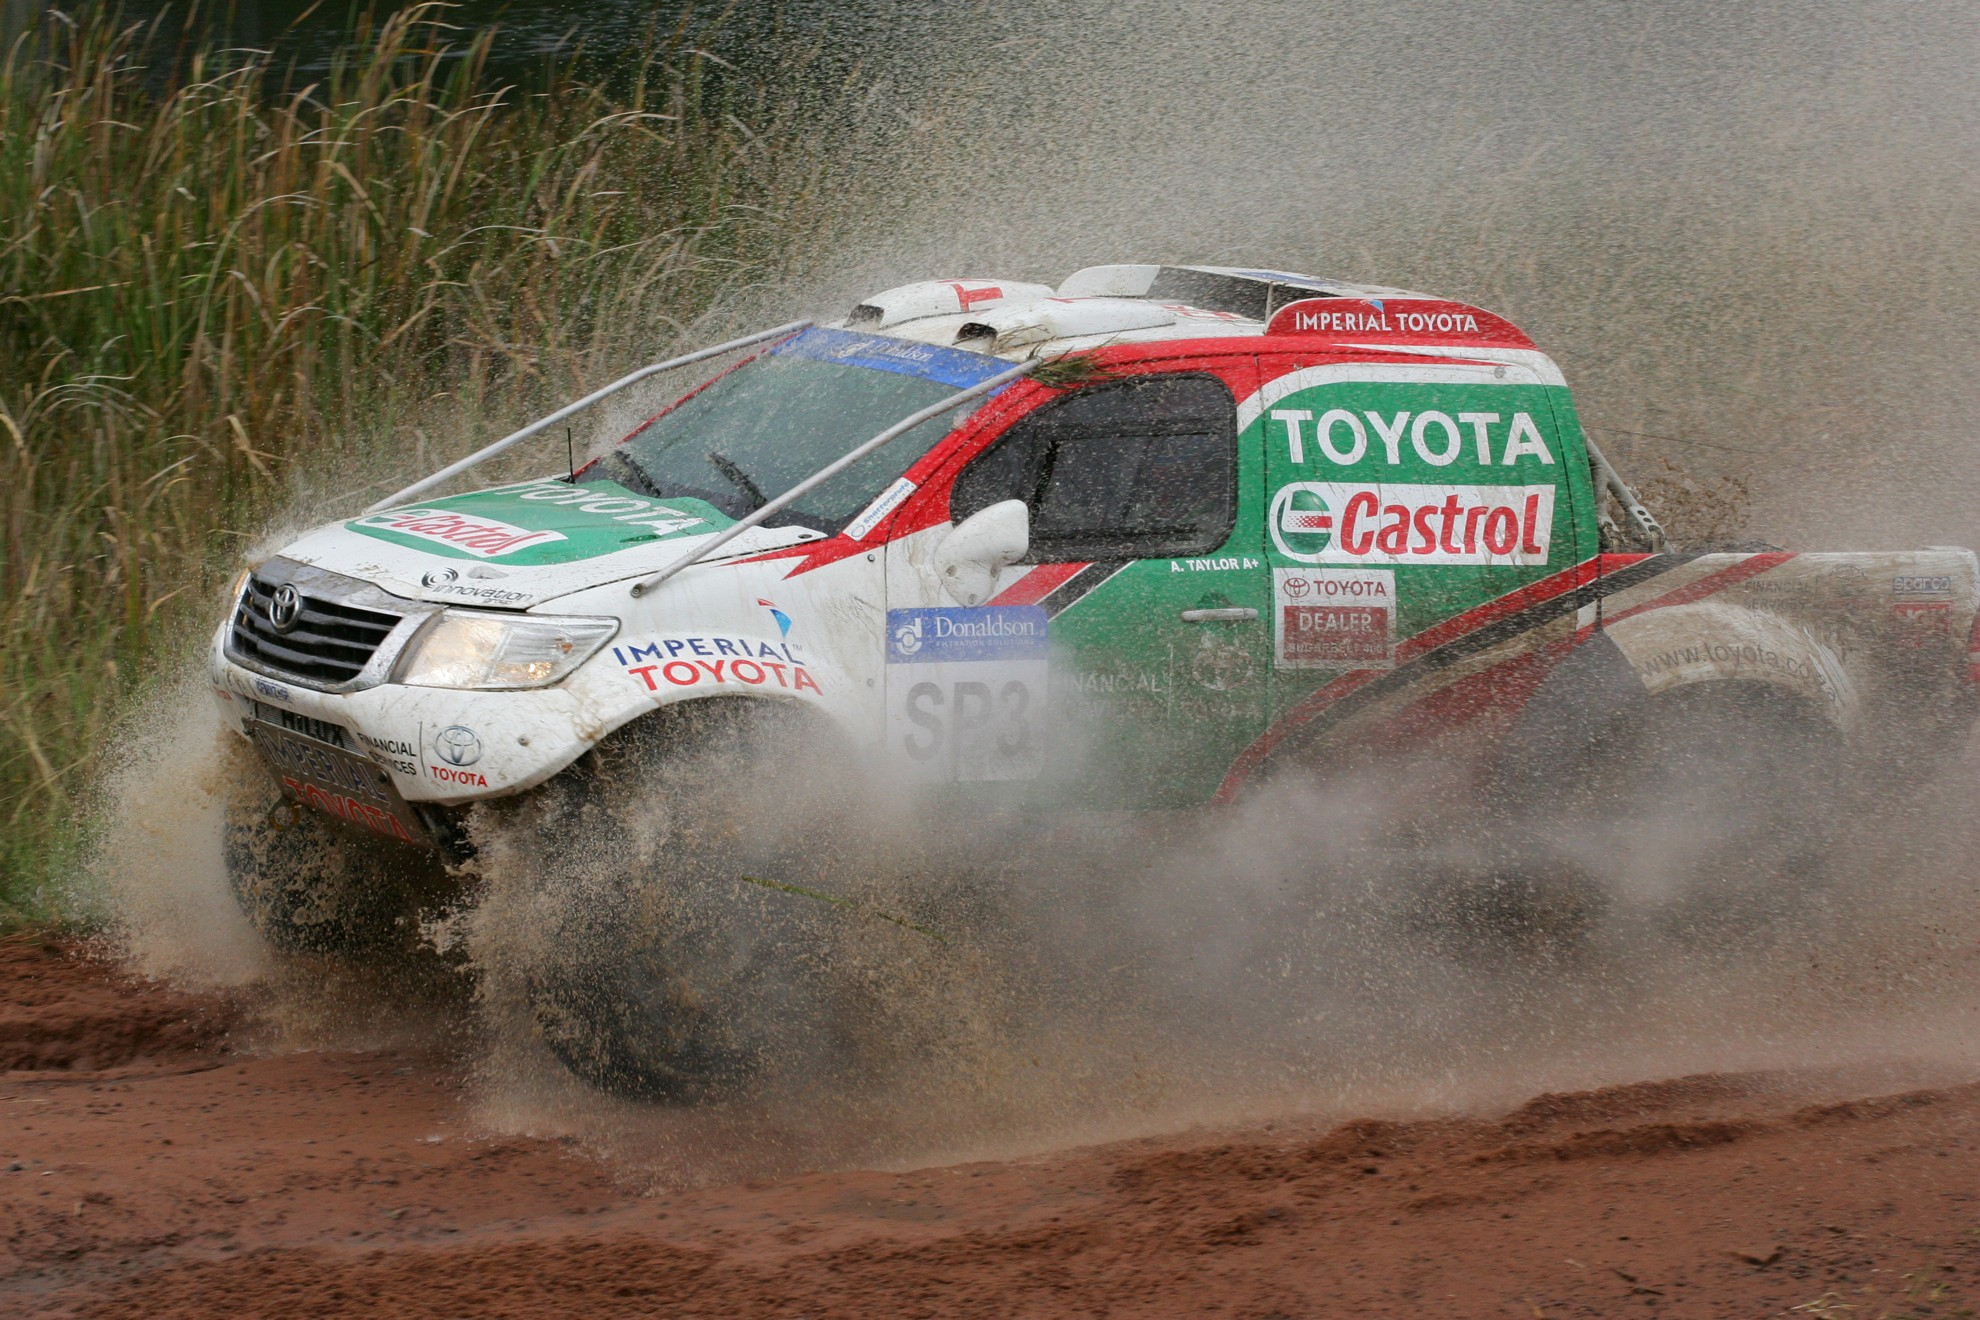 Racing Hilux Toyota